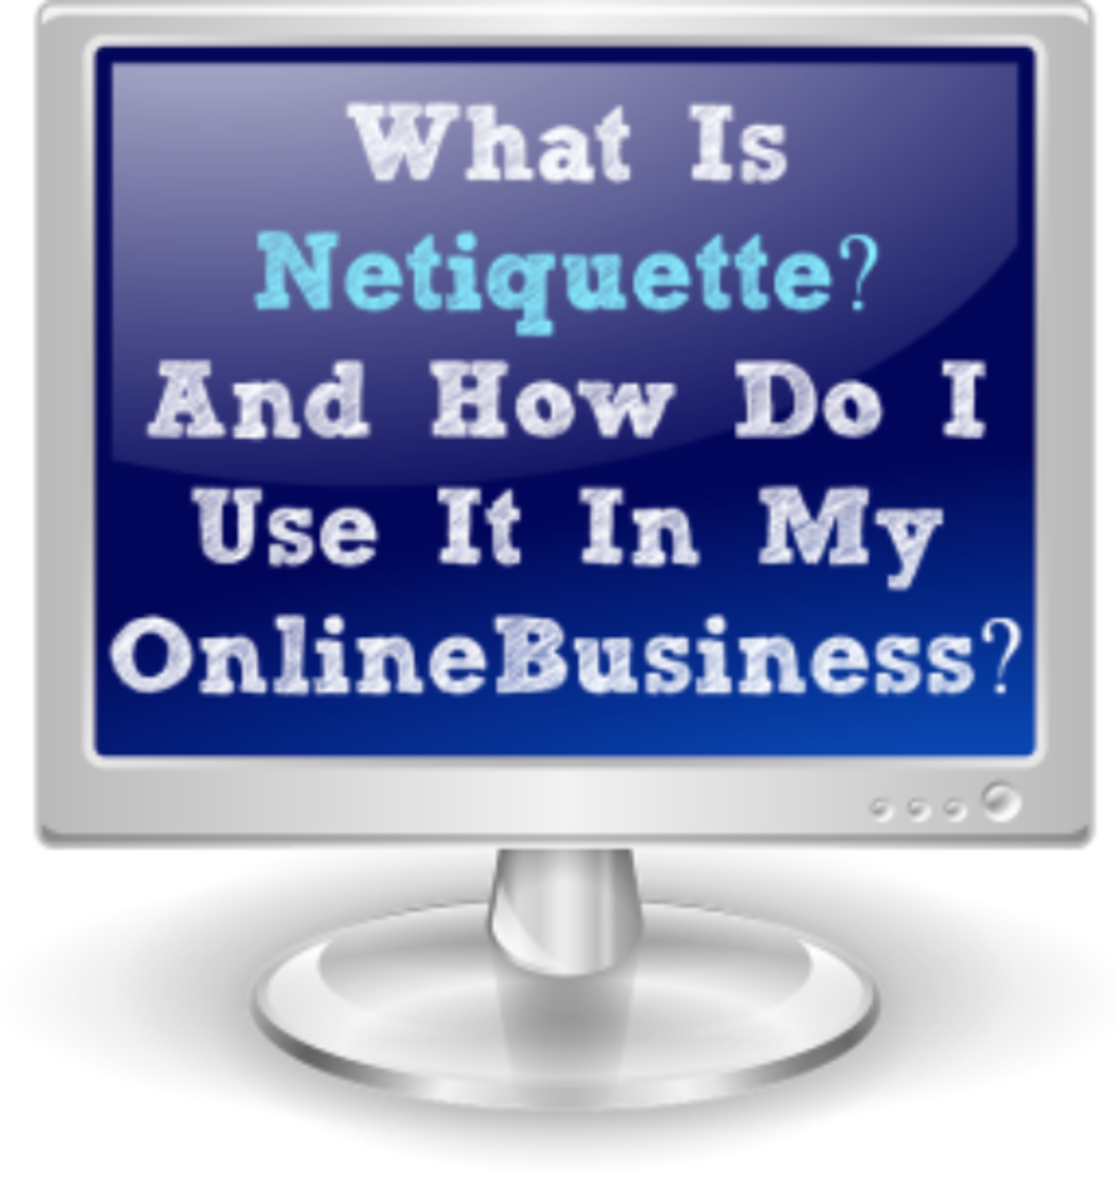 What Is Netiquette And Why Is It Important?